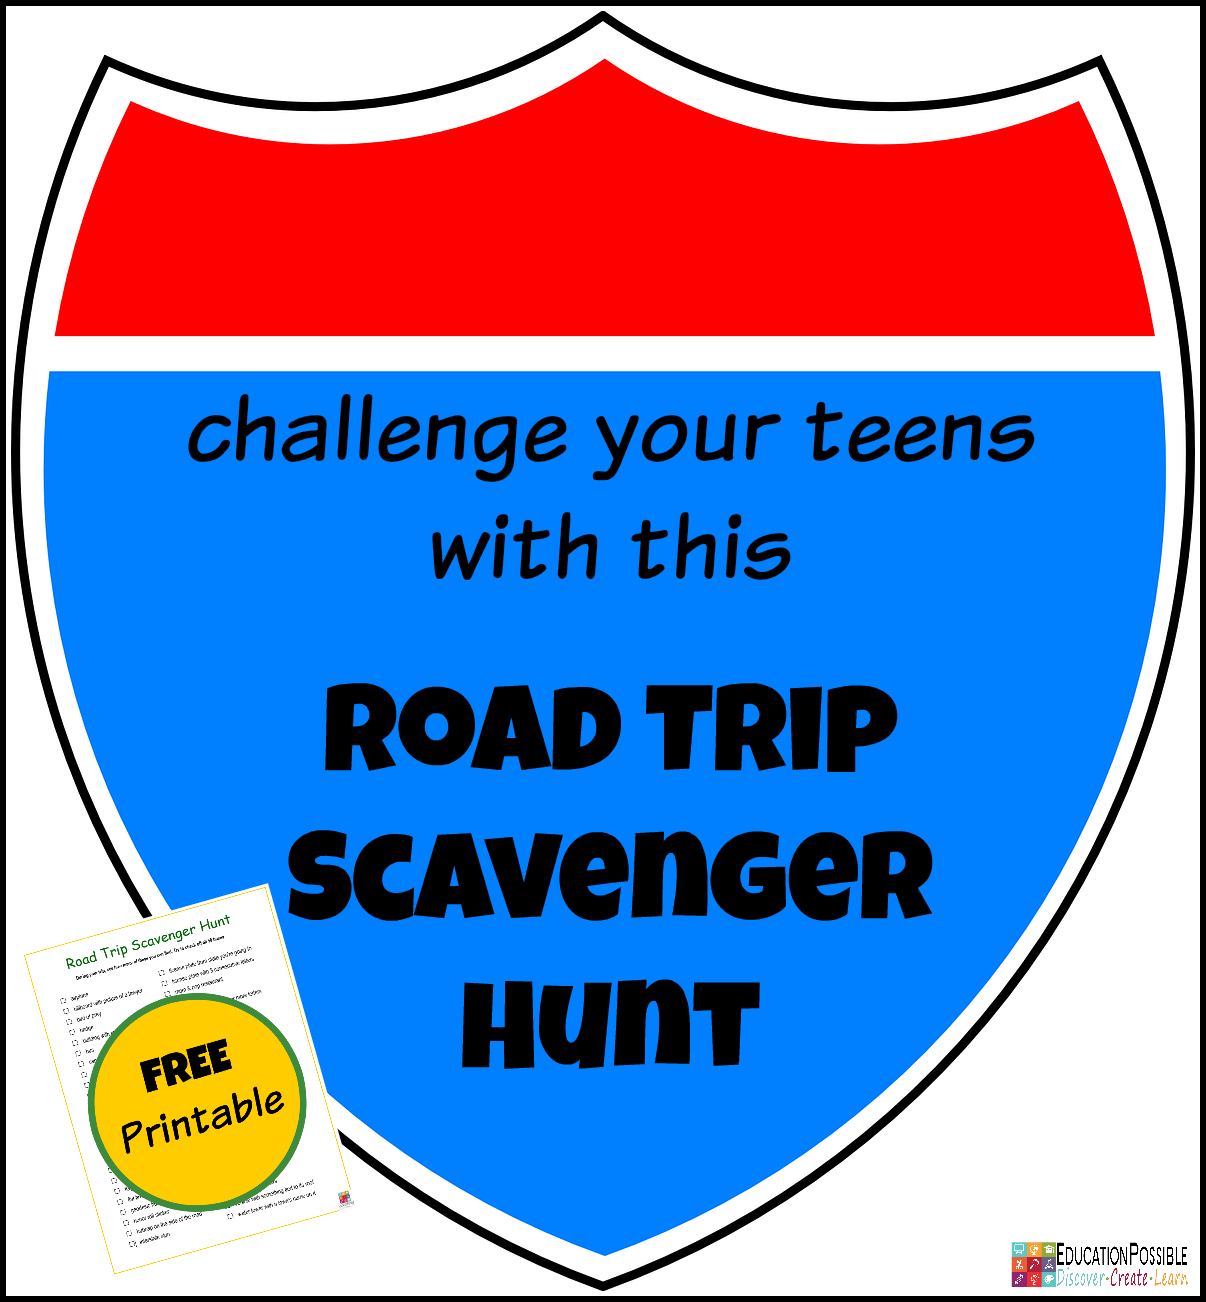 Challenge-your-Teens-with-a-Road-Trip-Scavenger-Hunt-@EducationPossible